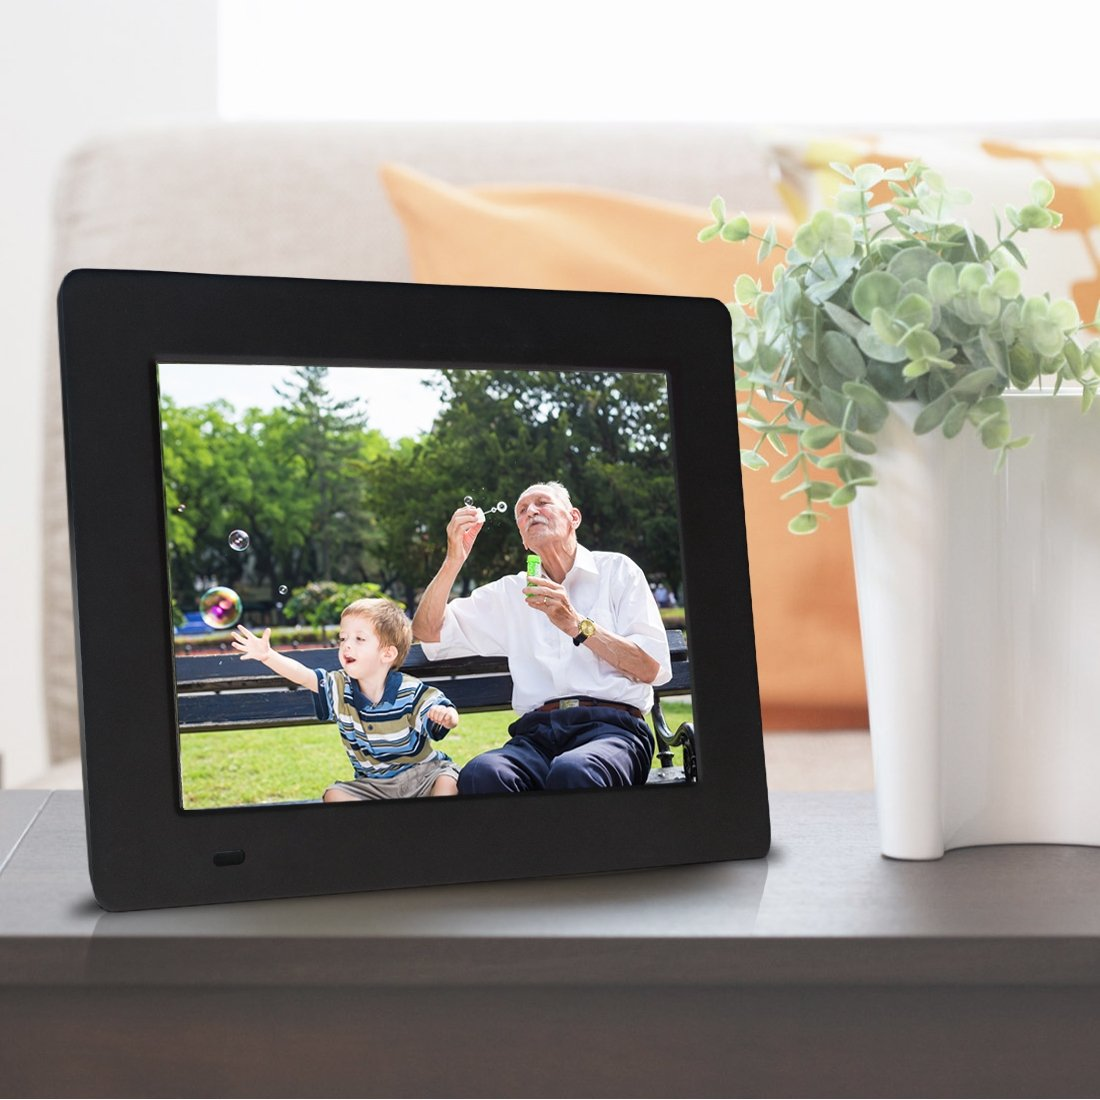 Sungale PF709-7 inch Digital Photo Frame with 0.3\